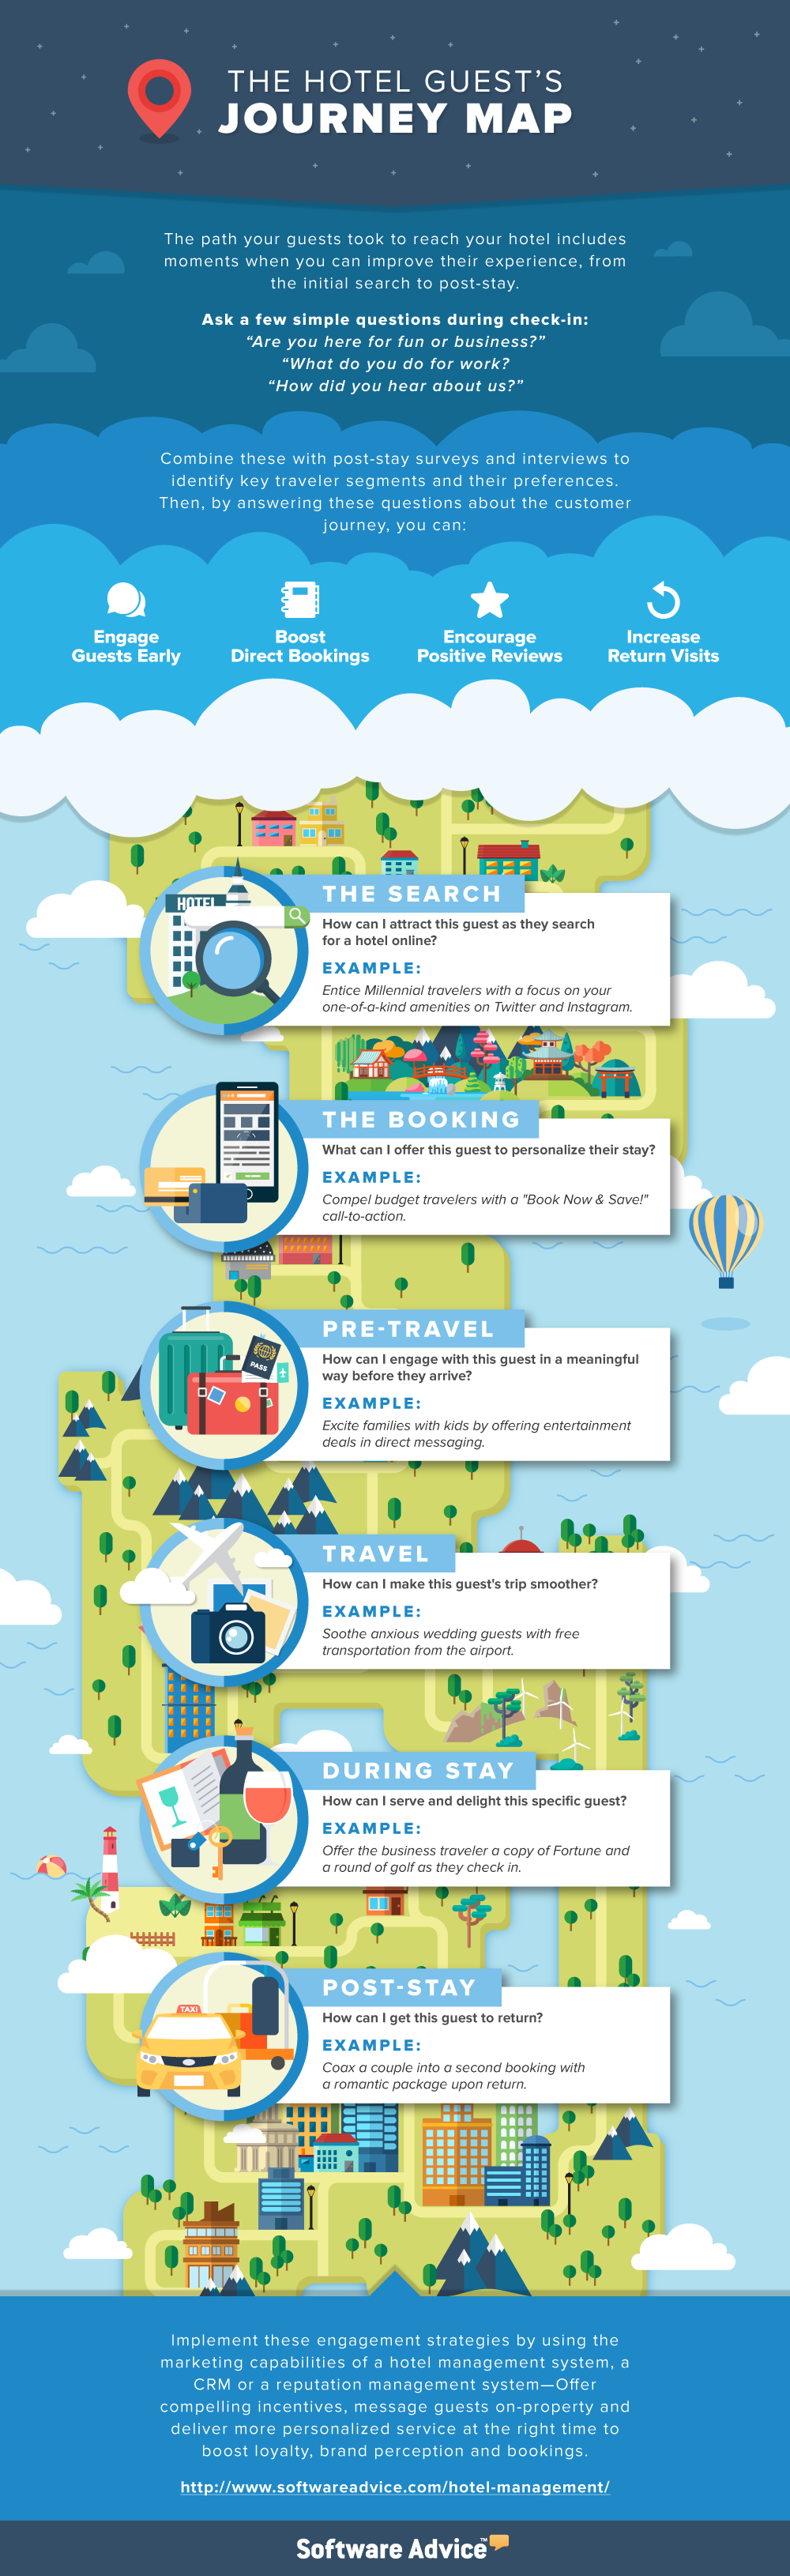 8 best hotels customer journey maps images on pinterest customer 8 best hotels customer journey maps images on pinterest customer journey mapping receptionist and customer experience fandeluxe Gallery